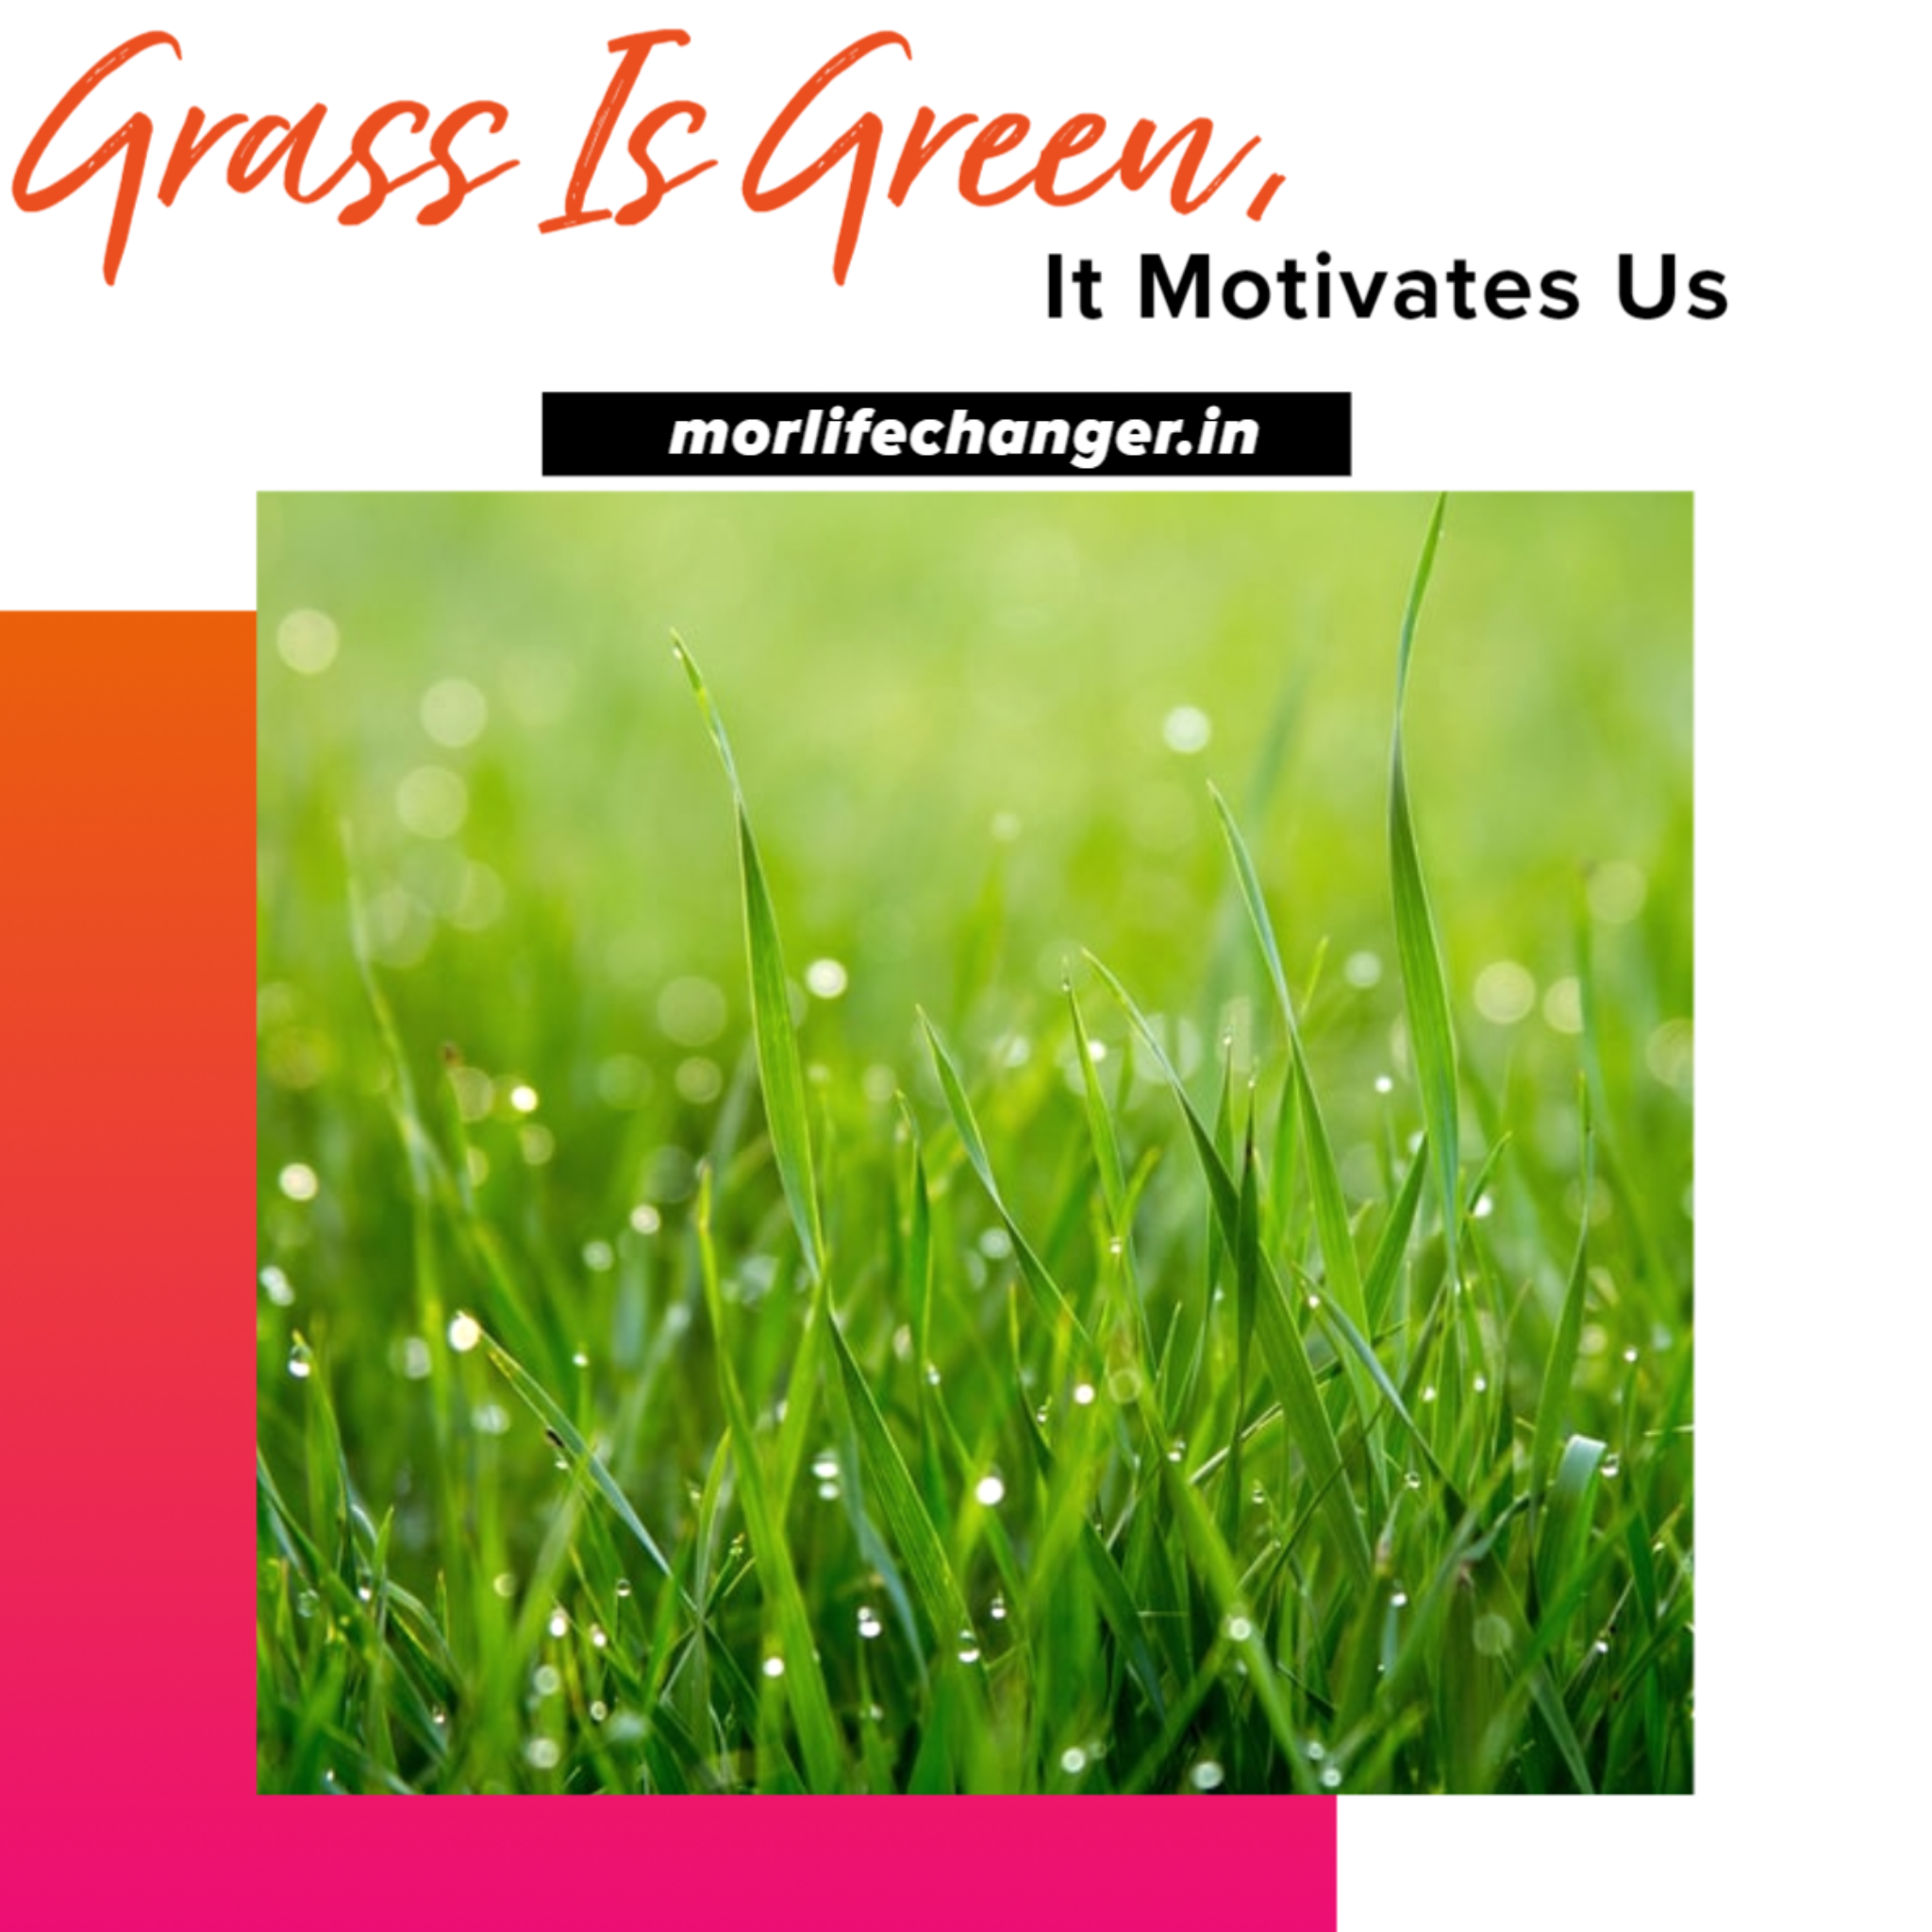 Grass is green it motivates us